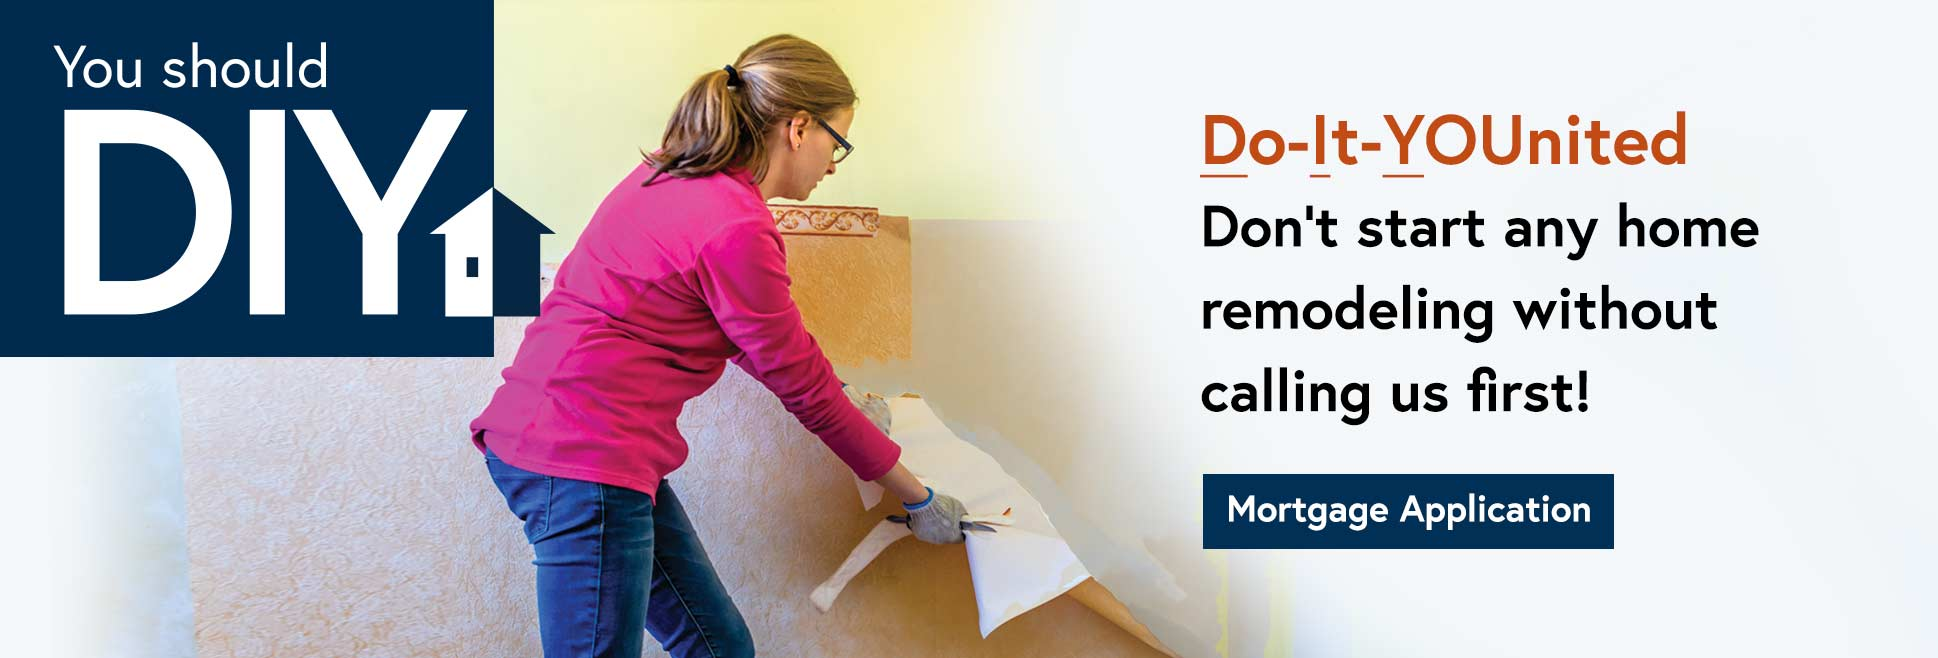 You should DIY. Do IT United. Don't start any home remodeling without calling us first. Mortgage Application.